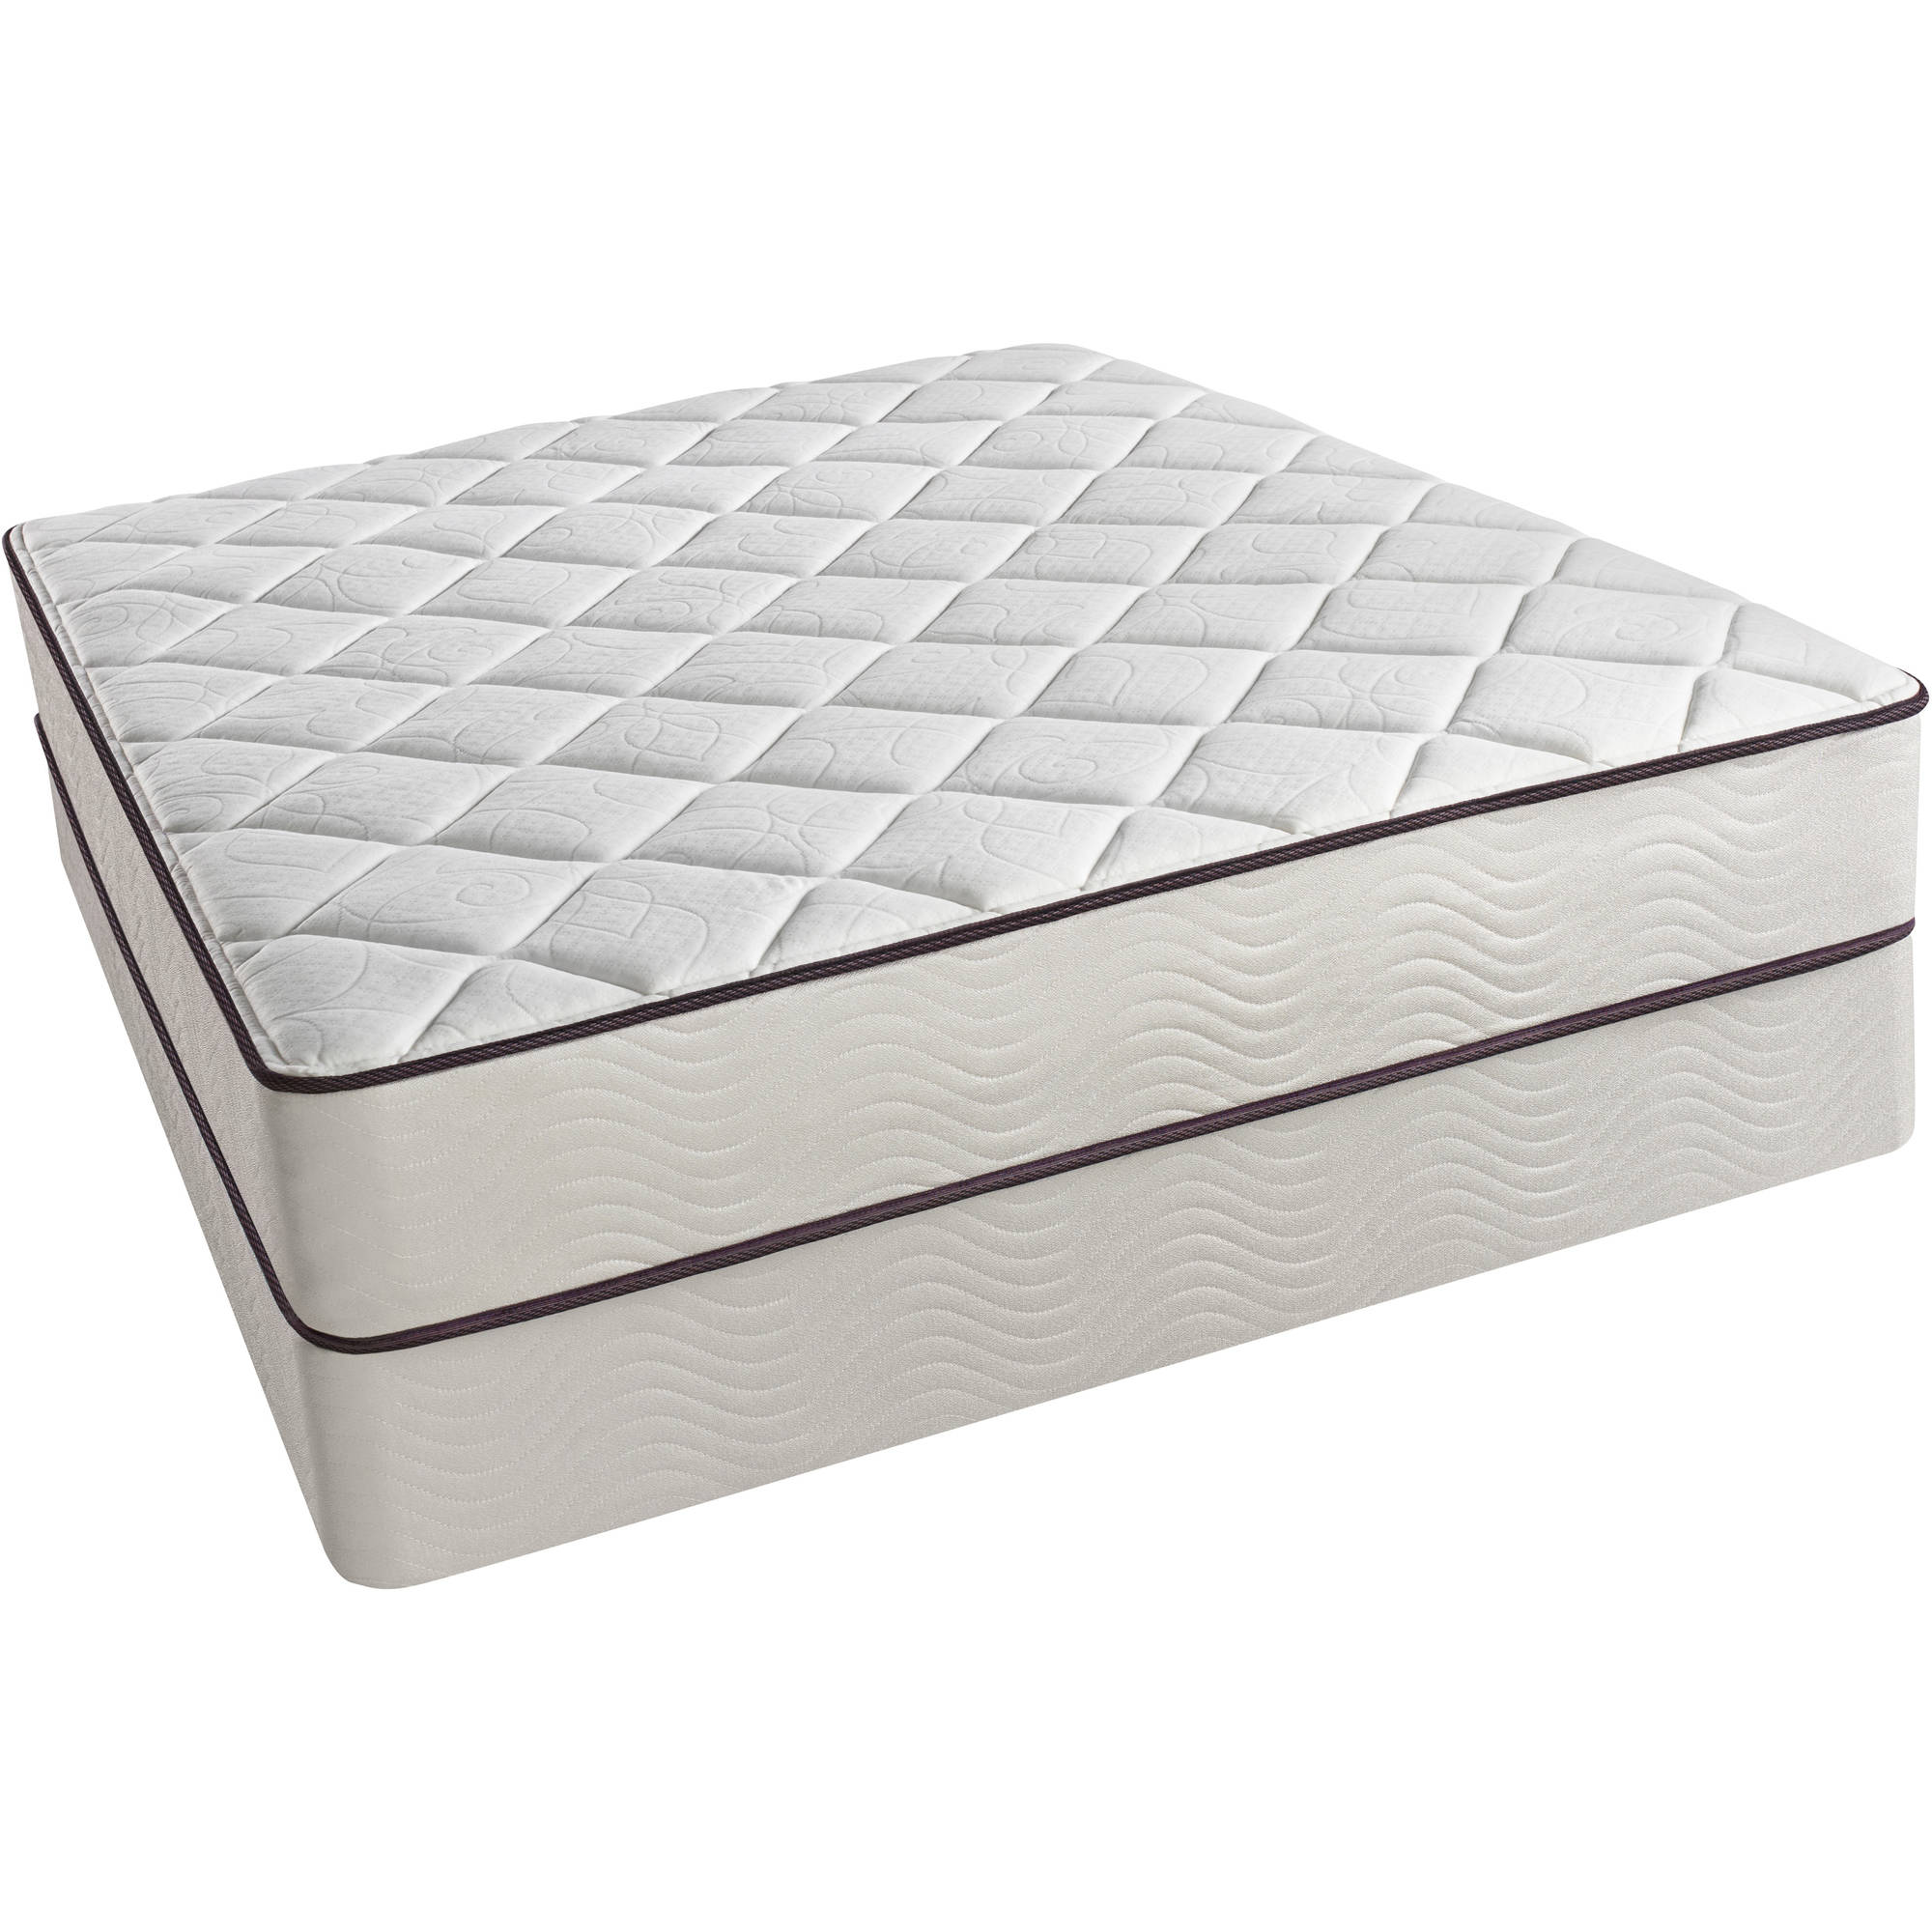 hei sears wid prod eurotop p accessories mattresses o only spin gazelle mattress home twin qlt pedic